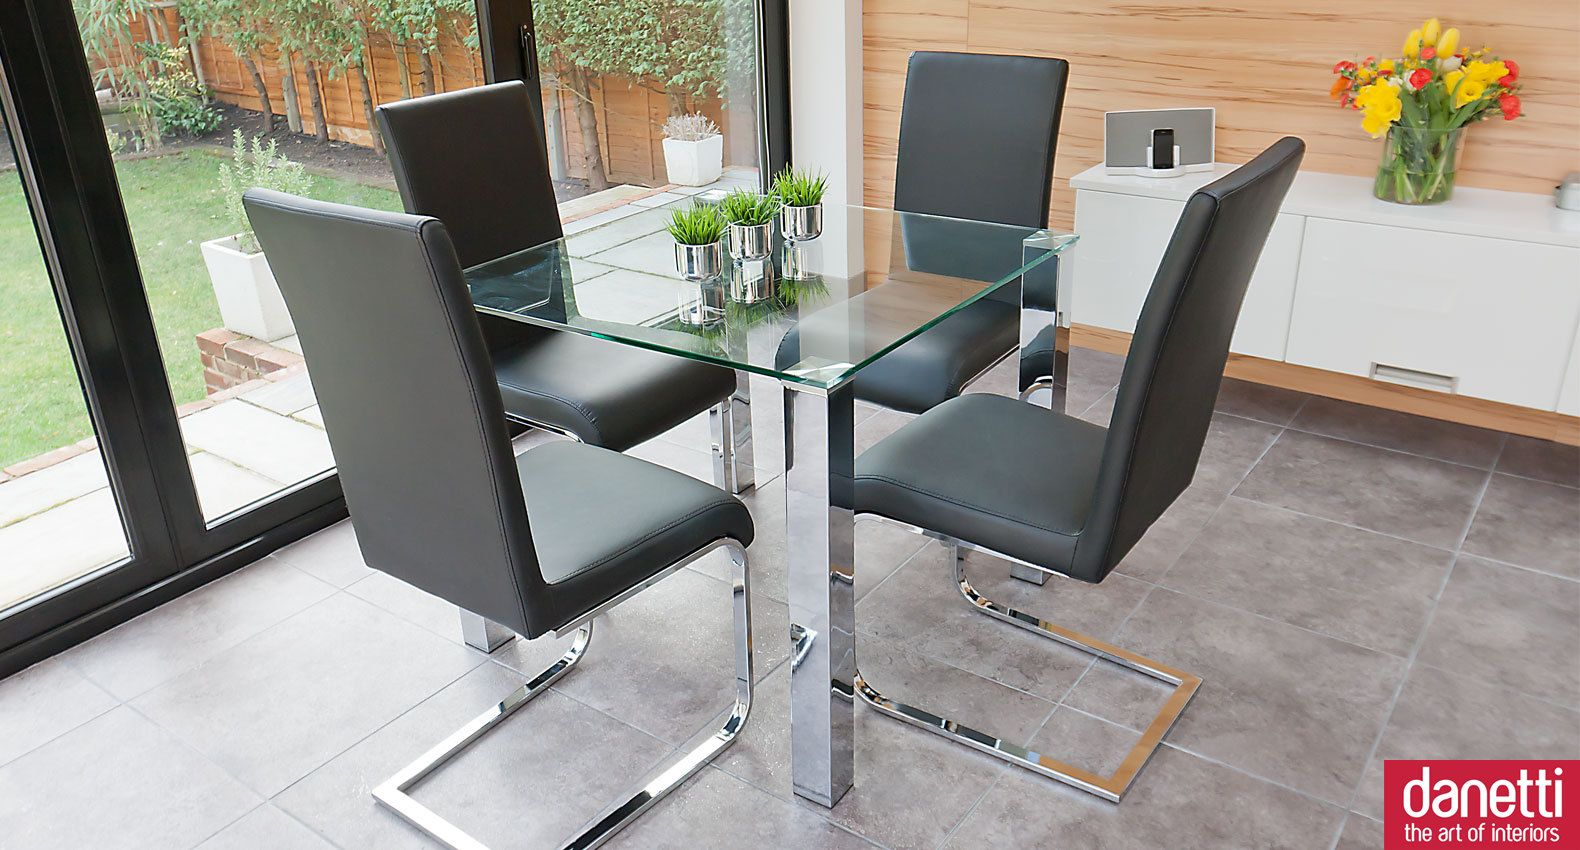 Modern Glass Dining Set Suitable For 2 Or 4 Peoplechunky Chrome Inspiration 2 Piece Dining Room Set Decorating Inspiration